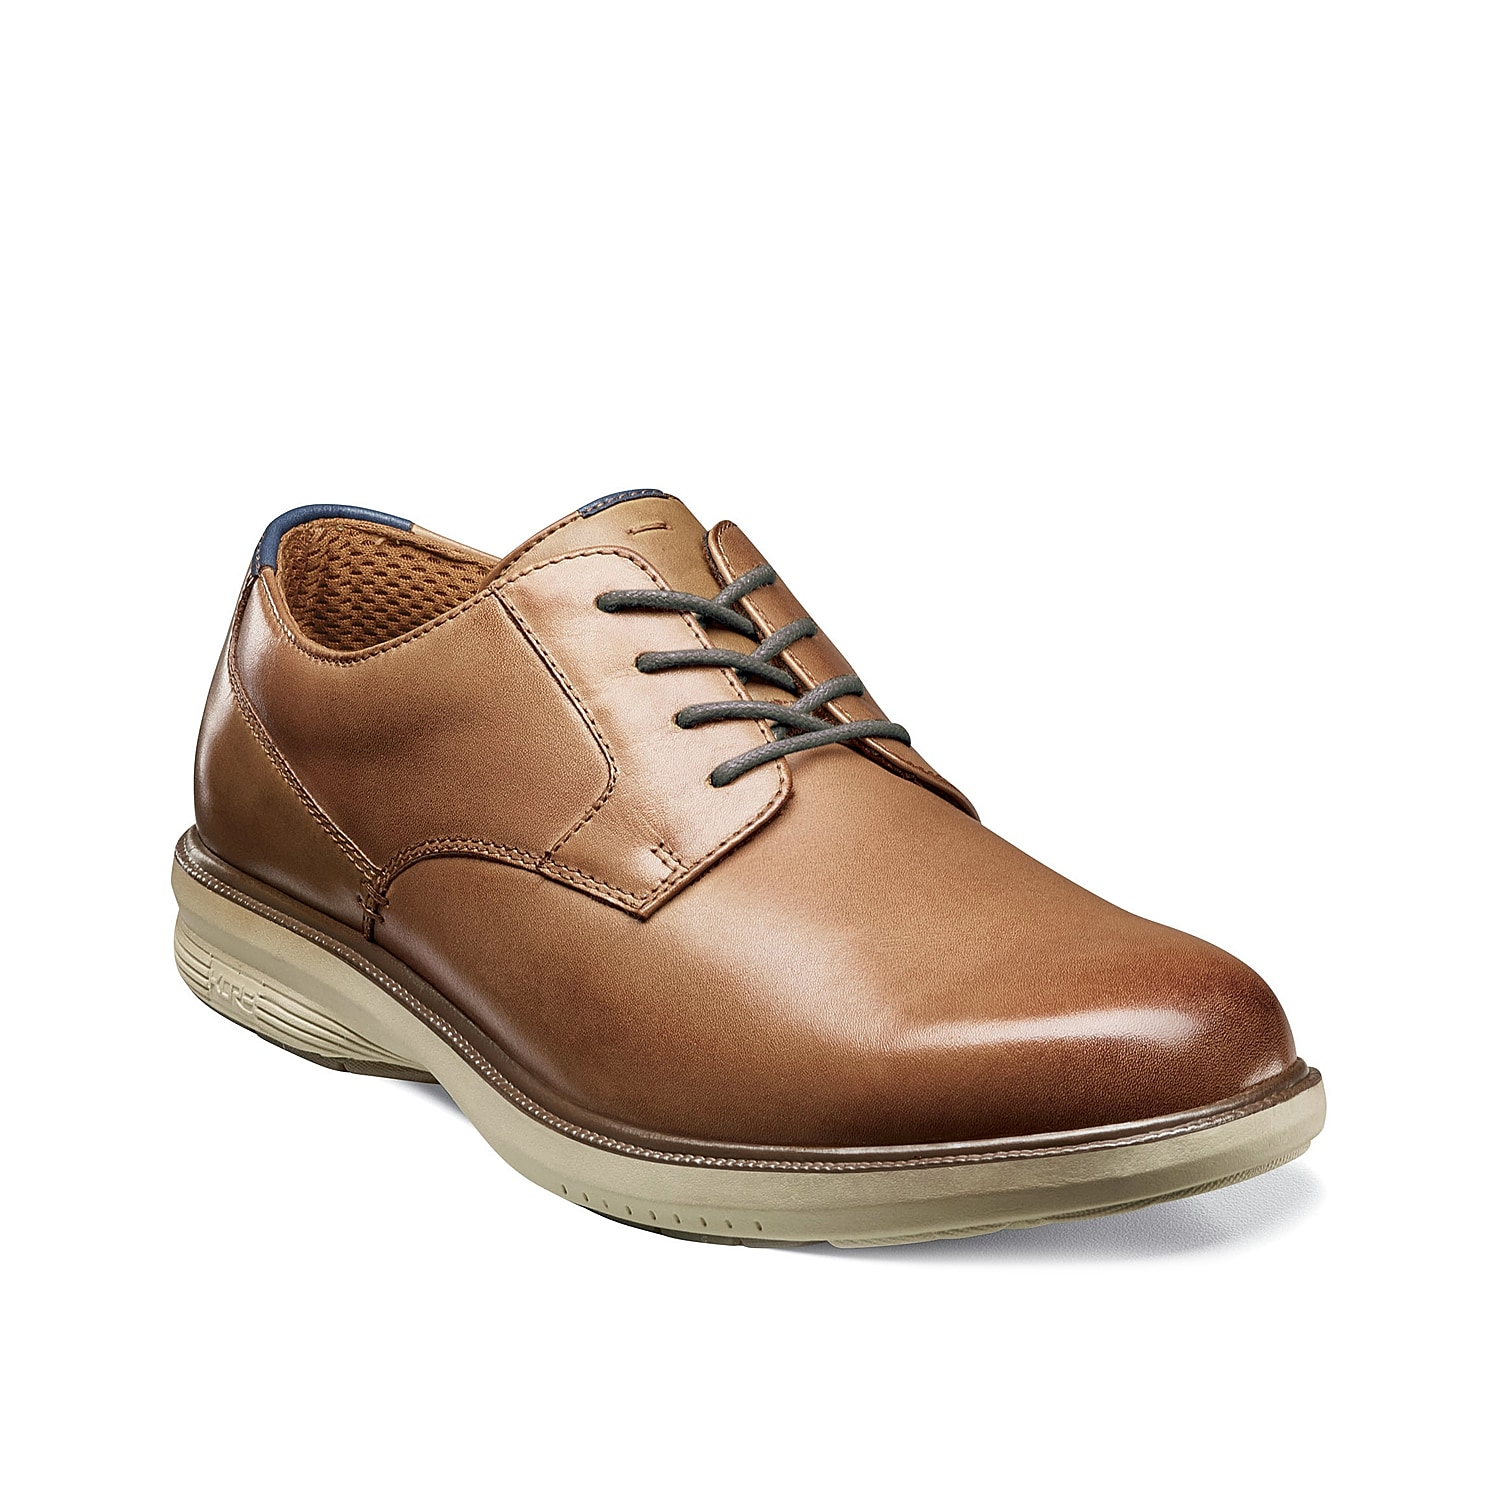 The Marvin St. oxford from Nunn Bush offers classic oxford stying to enhance office or dress looks.